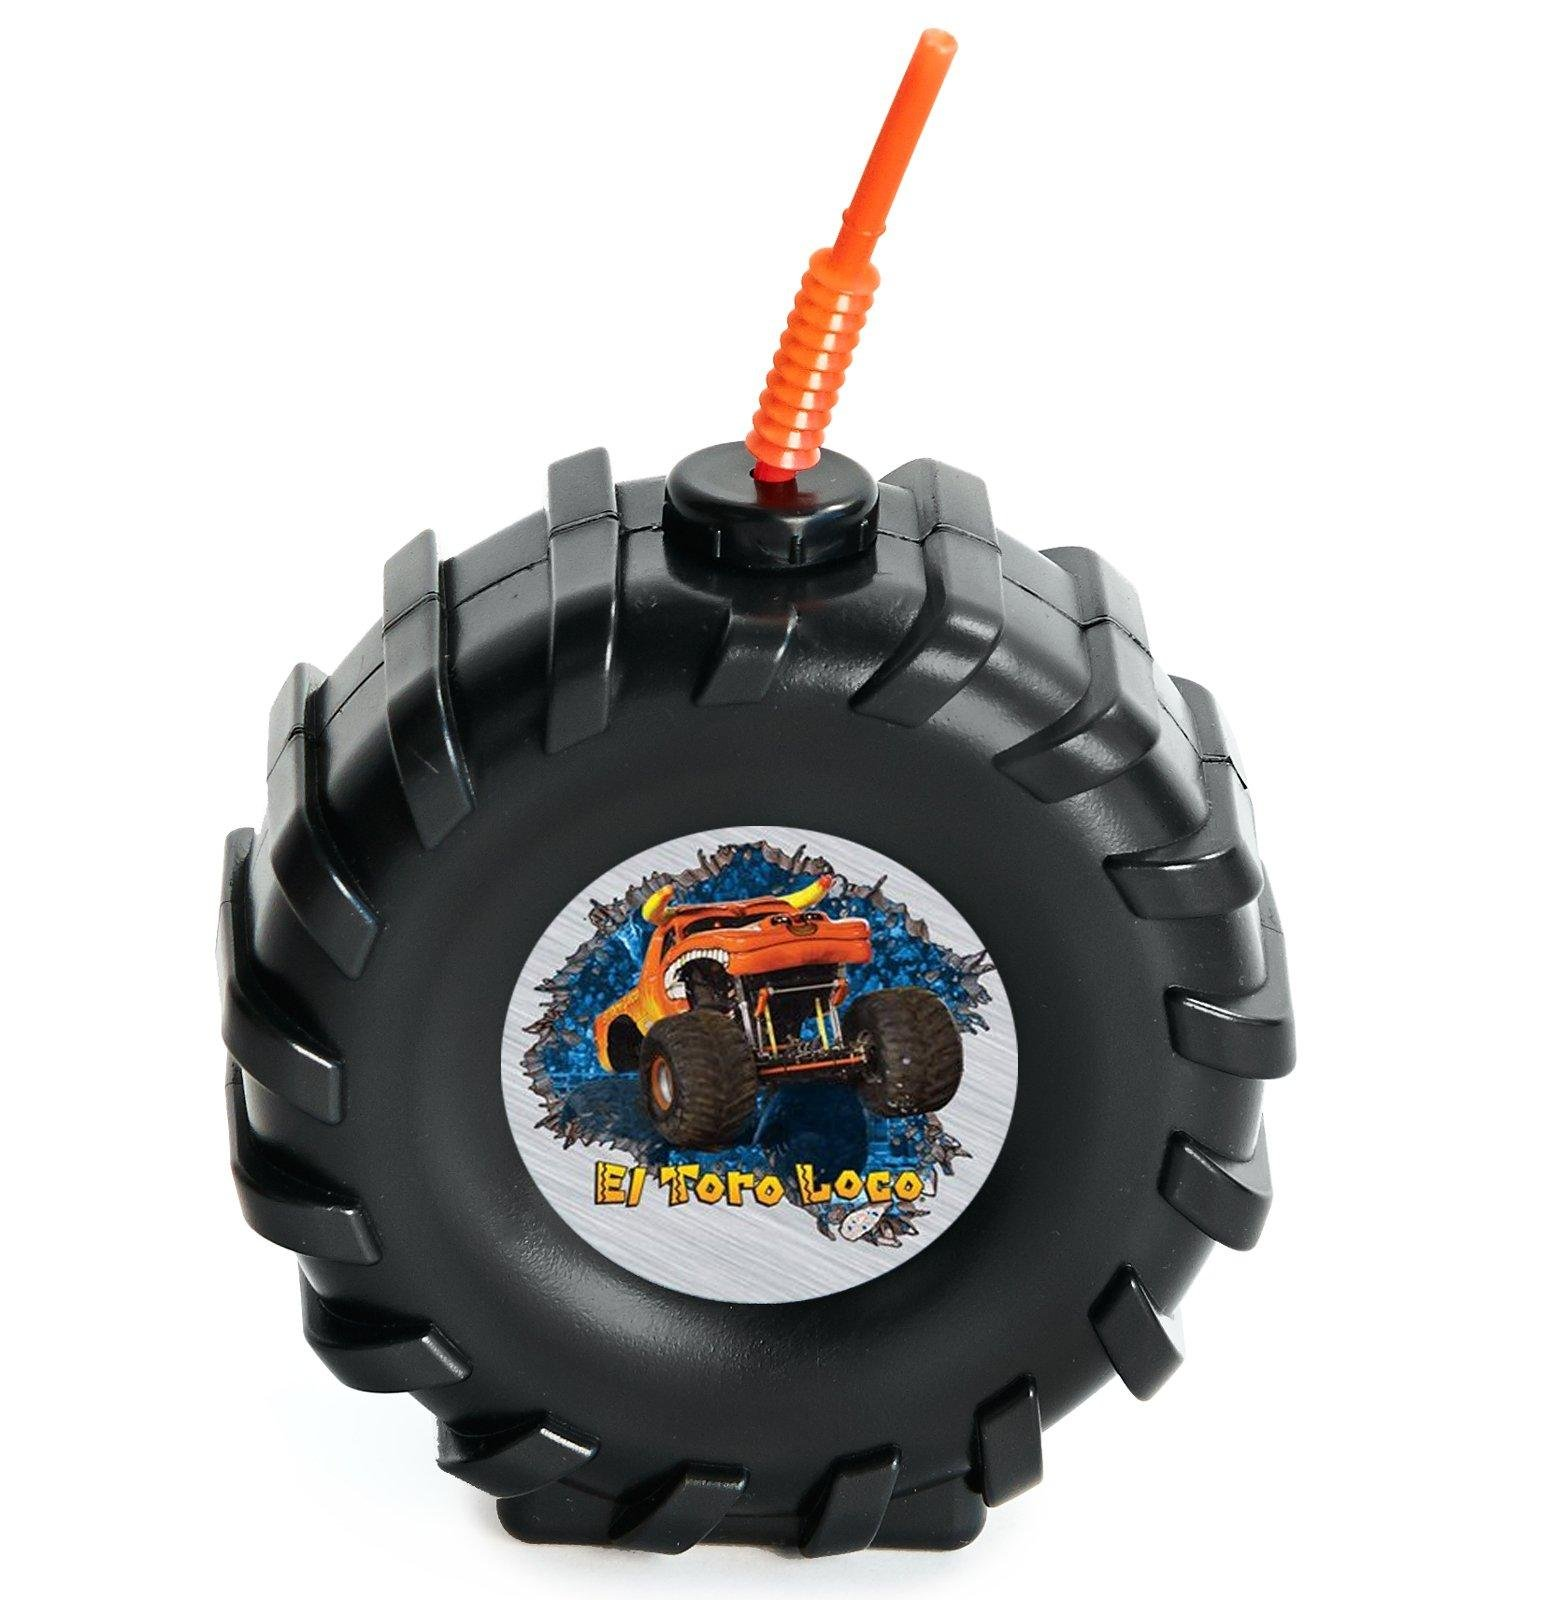 Monster Jam Childrens Birthday Party Supplies - Truck Tire Plastic Sippy Cup with Straw (16) by BirthdayExpress